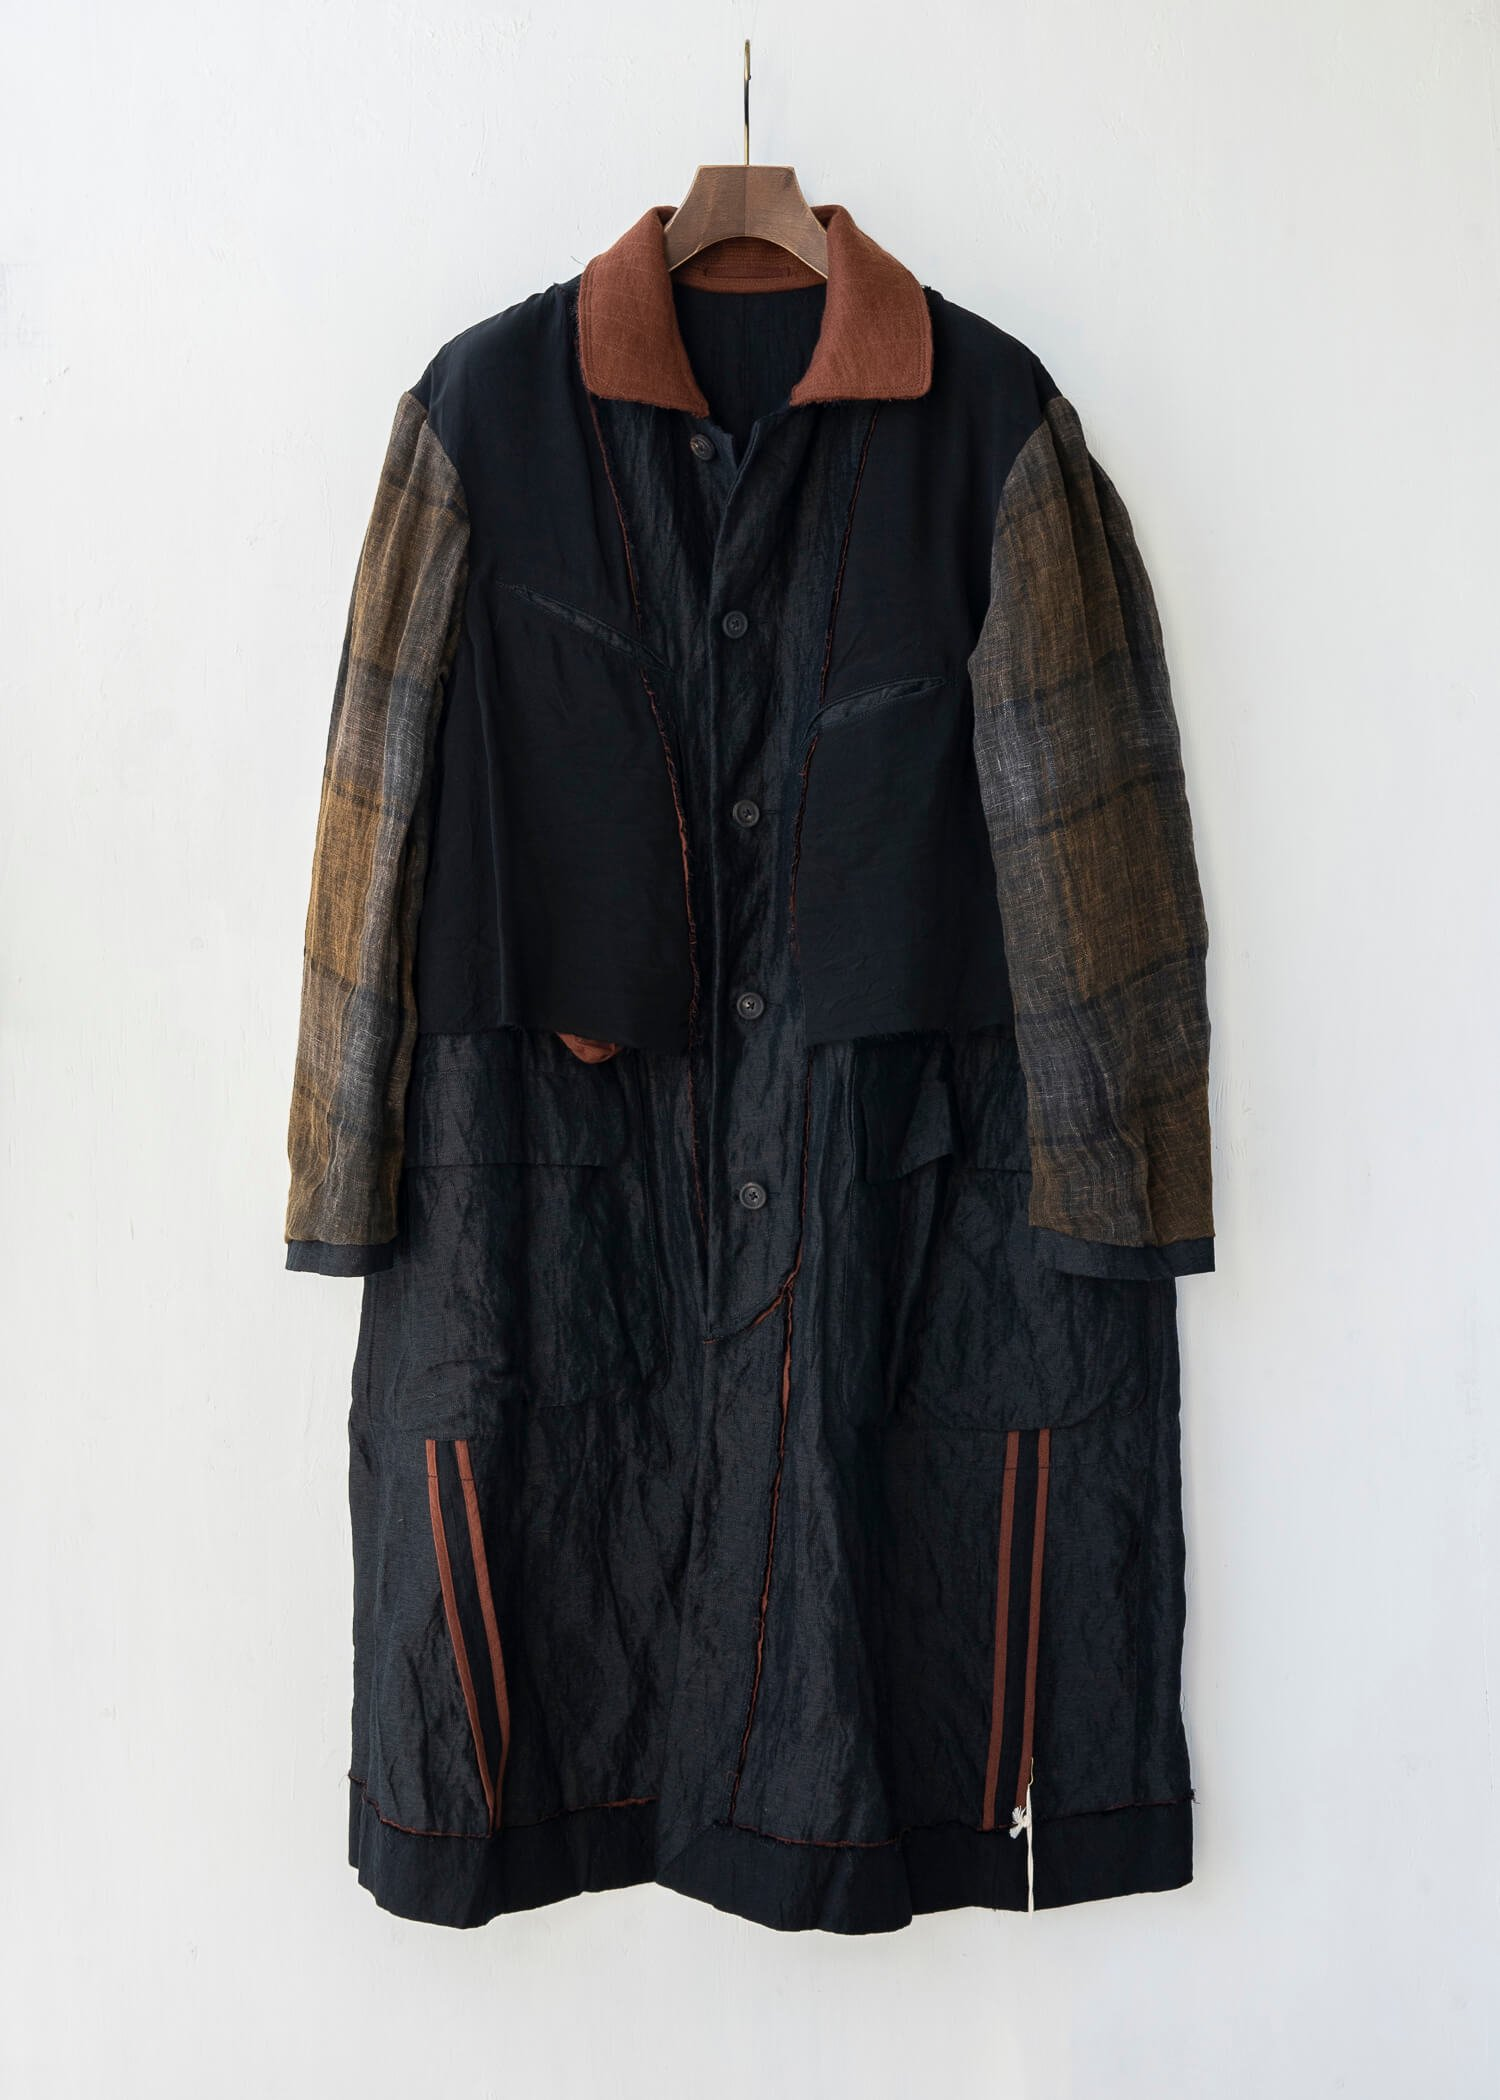 ZIGGY CHEN / COAT Art.#1104